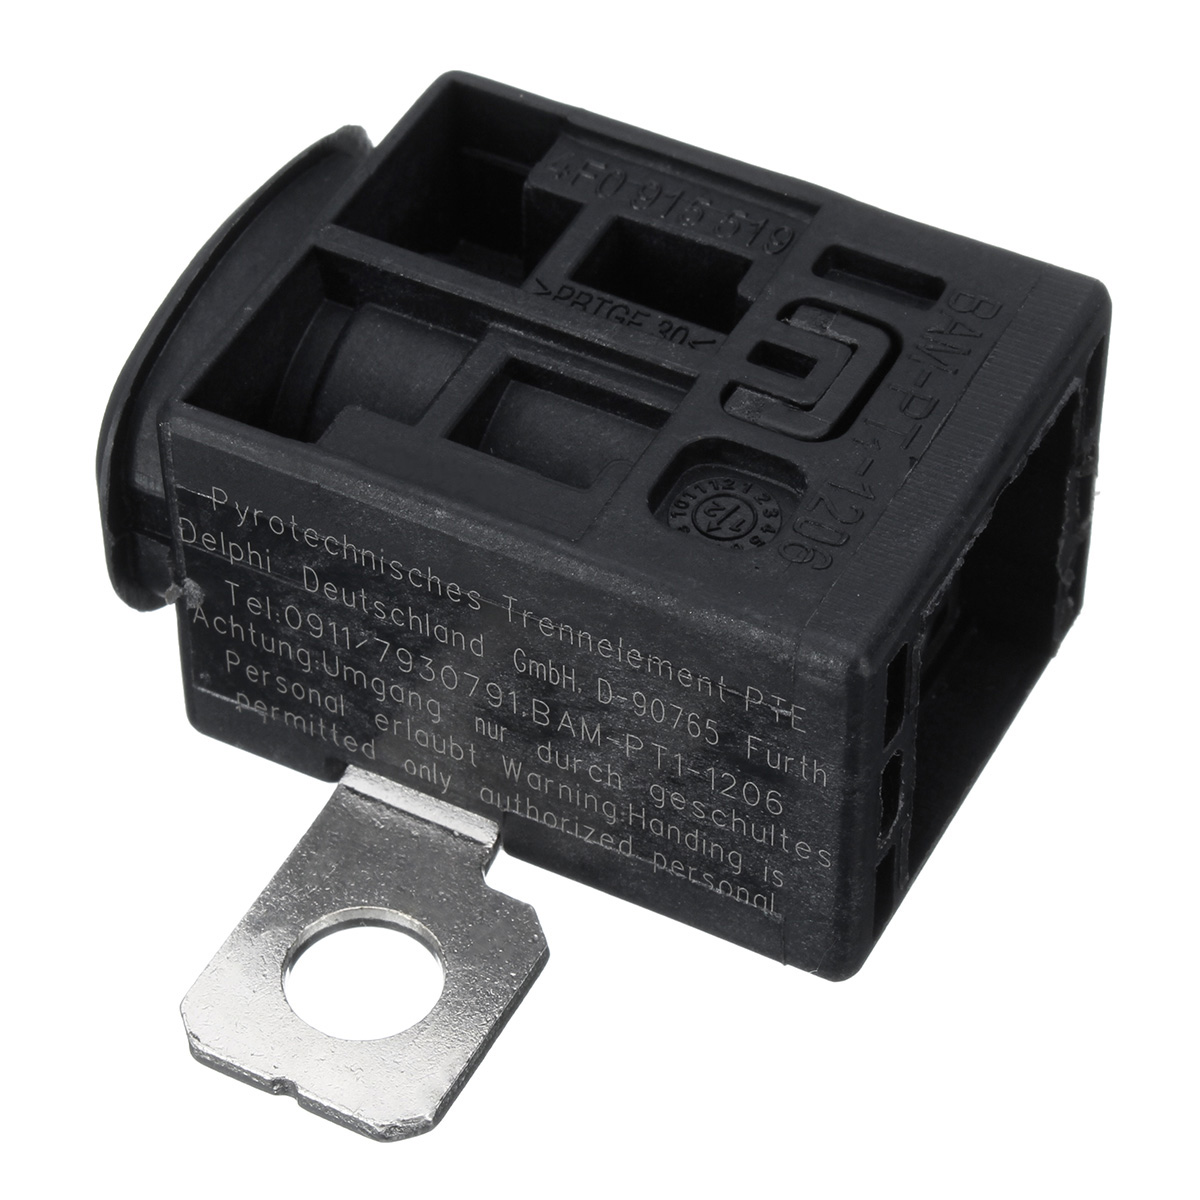 4f0915519 battery fuse box cut off overload protection trip for audi q5 a5 a7 a6 vw skoda in fuses from automobiles motorcycles on aliexpress com  [ 1200 x 1200 Pixel ]